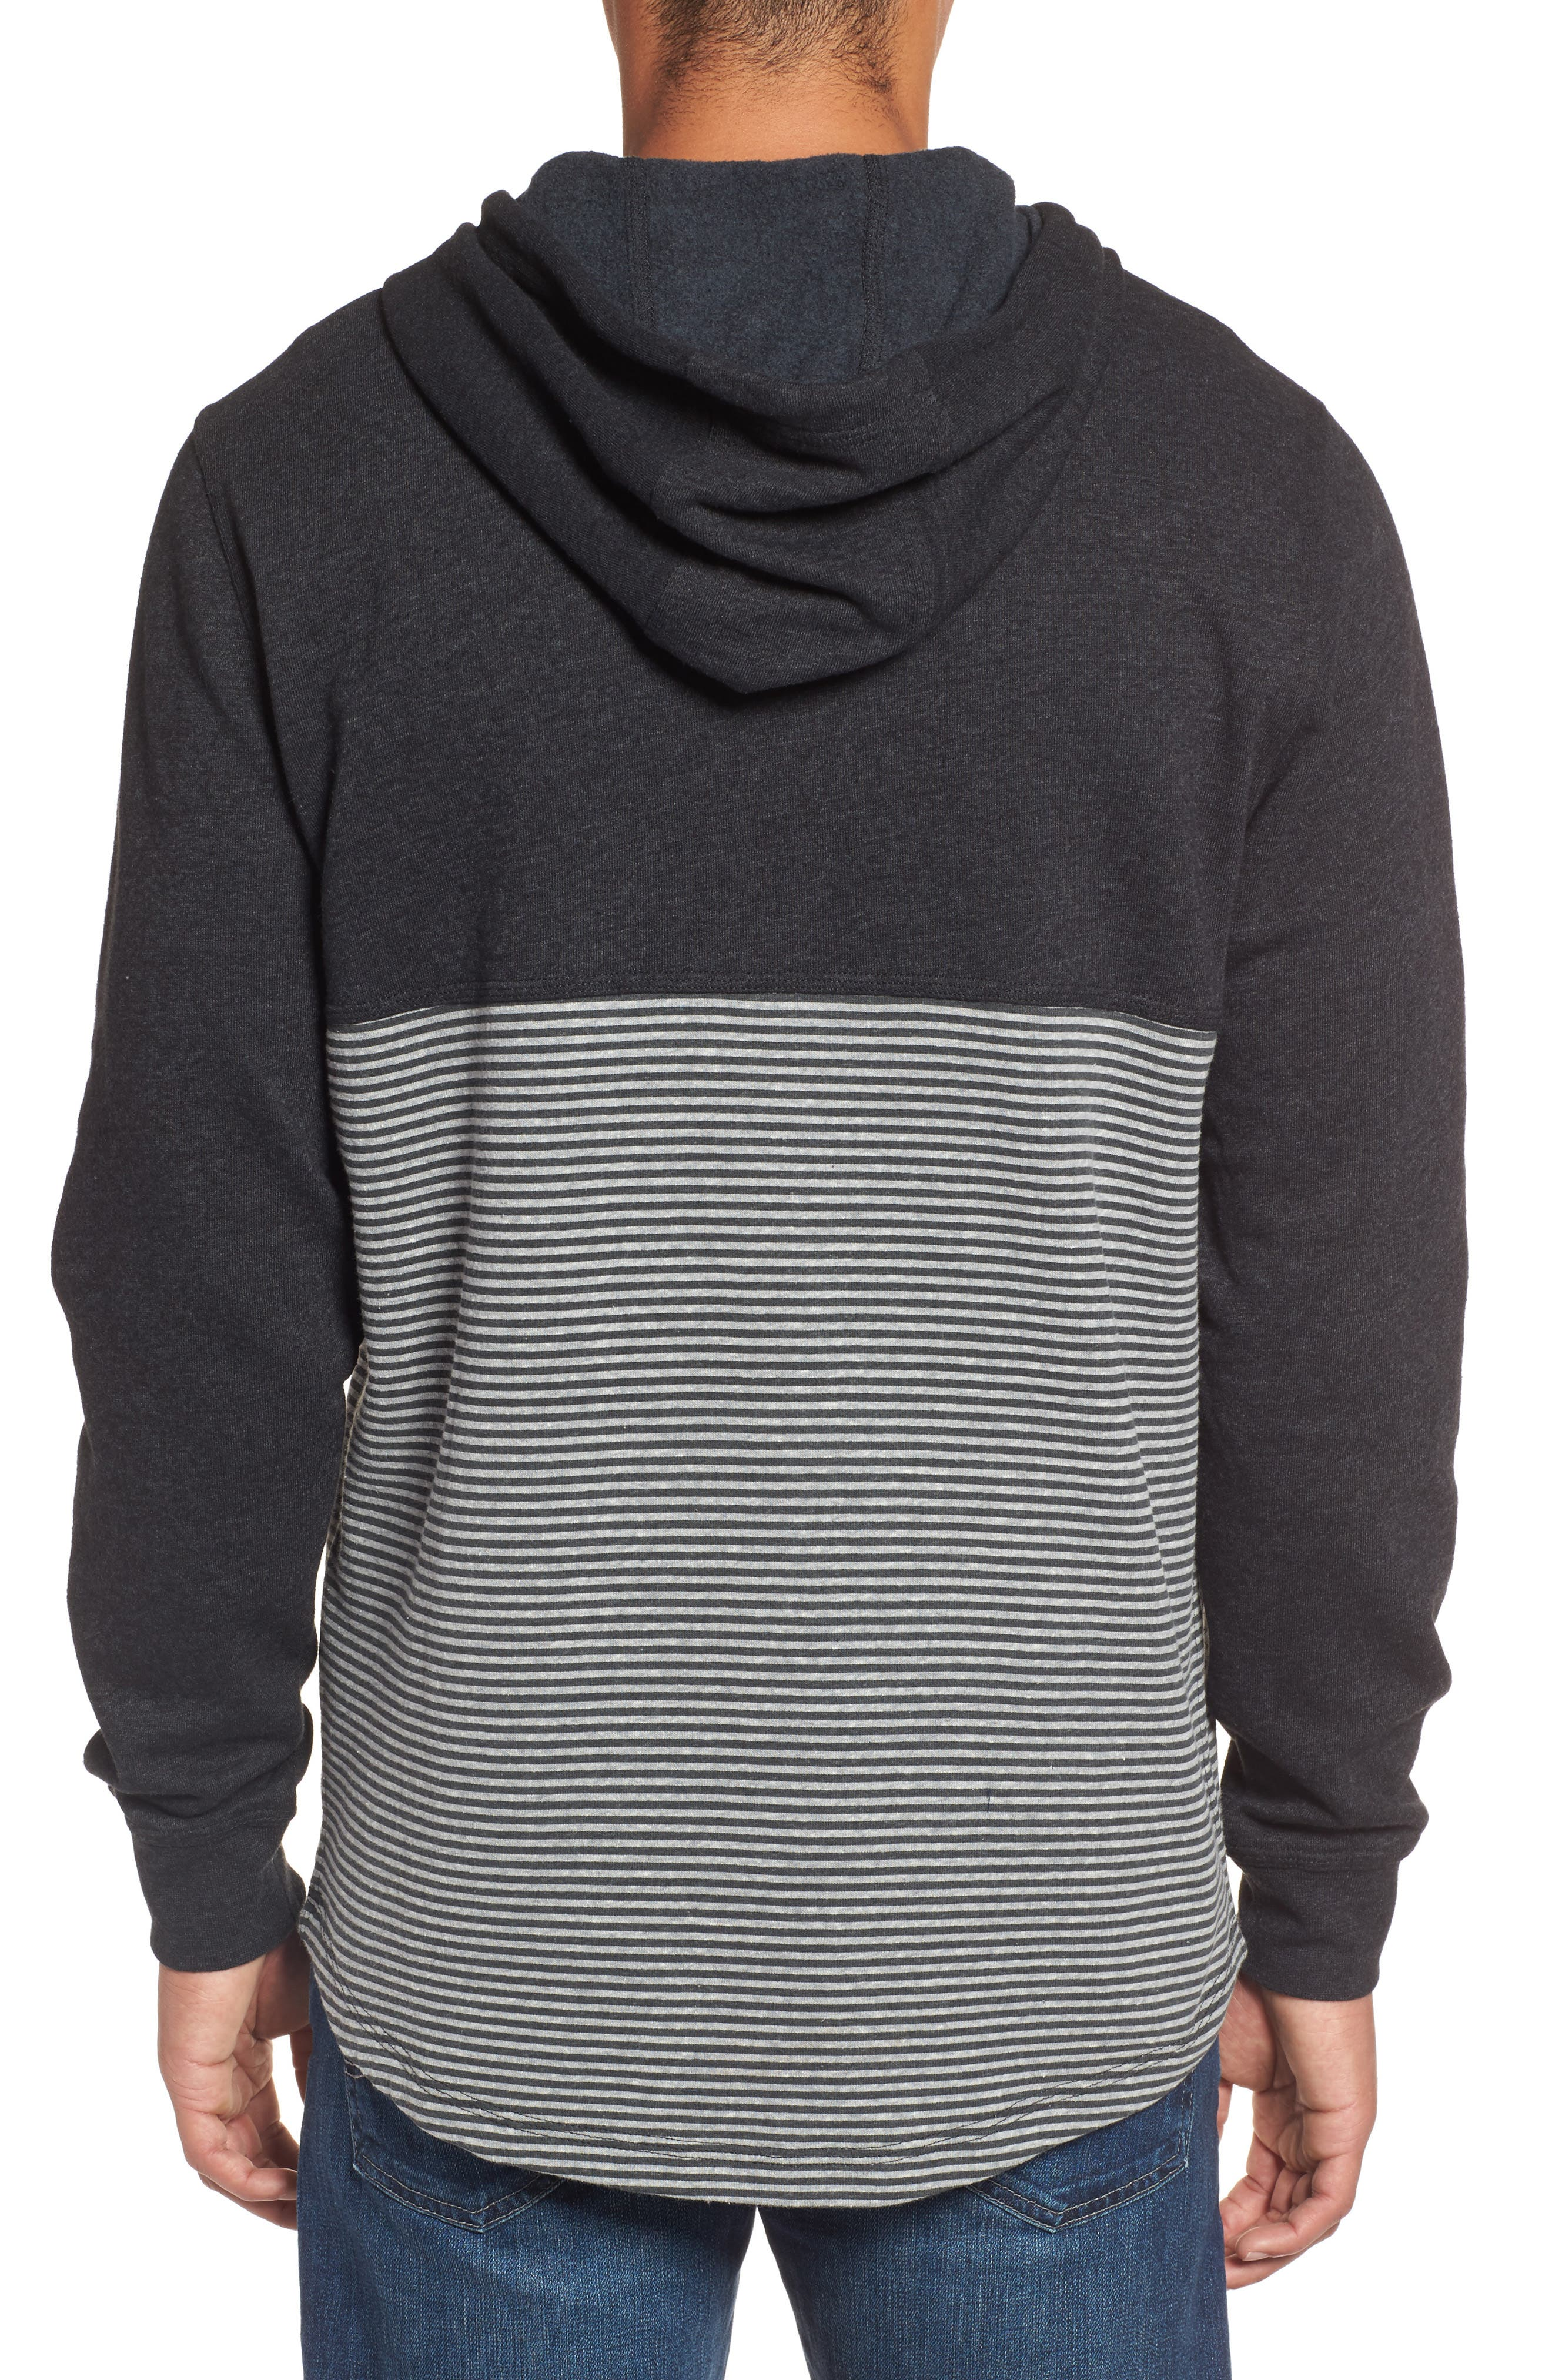 Bayside Pullover Hoodie,                             Alternate thumbnail 4, color,